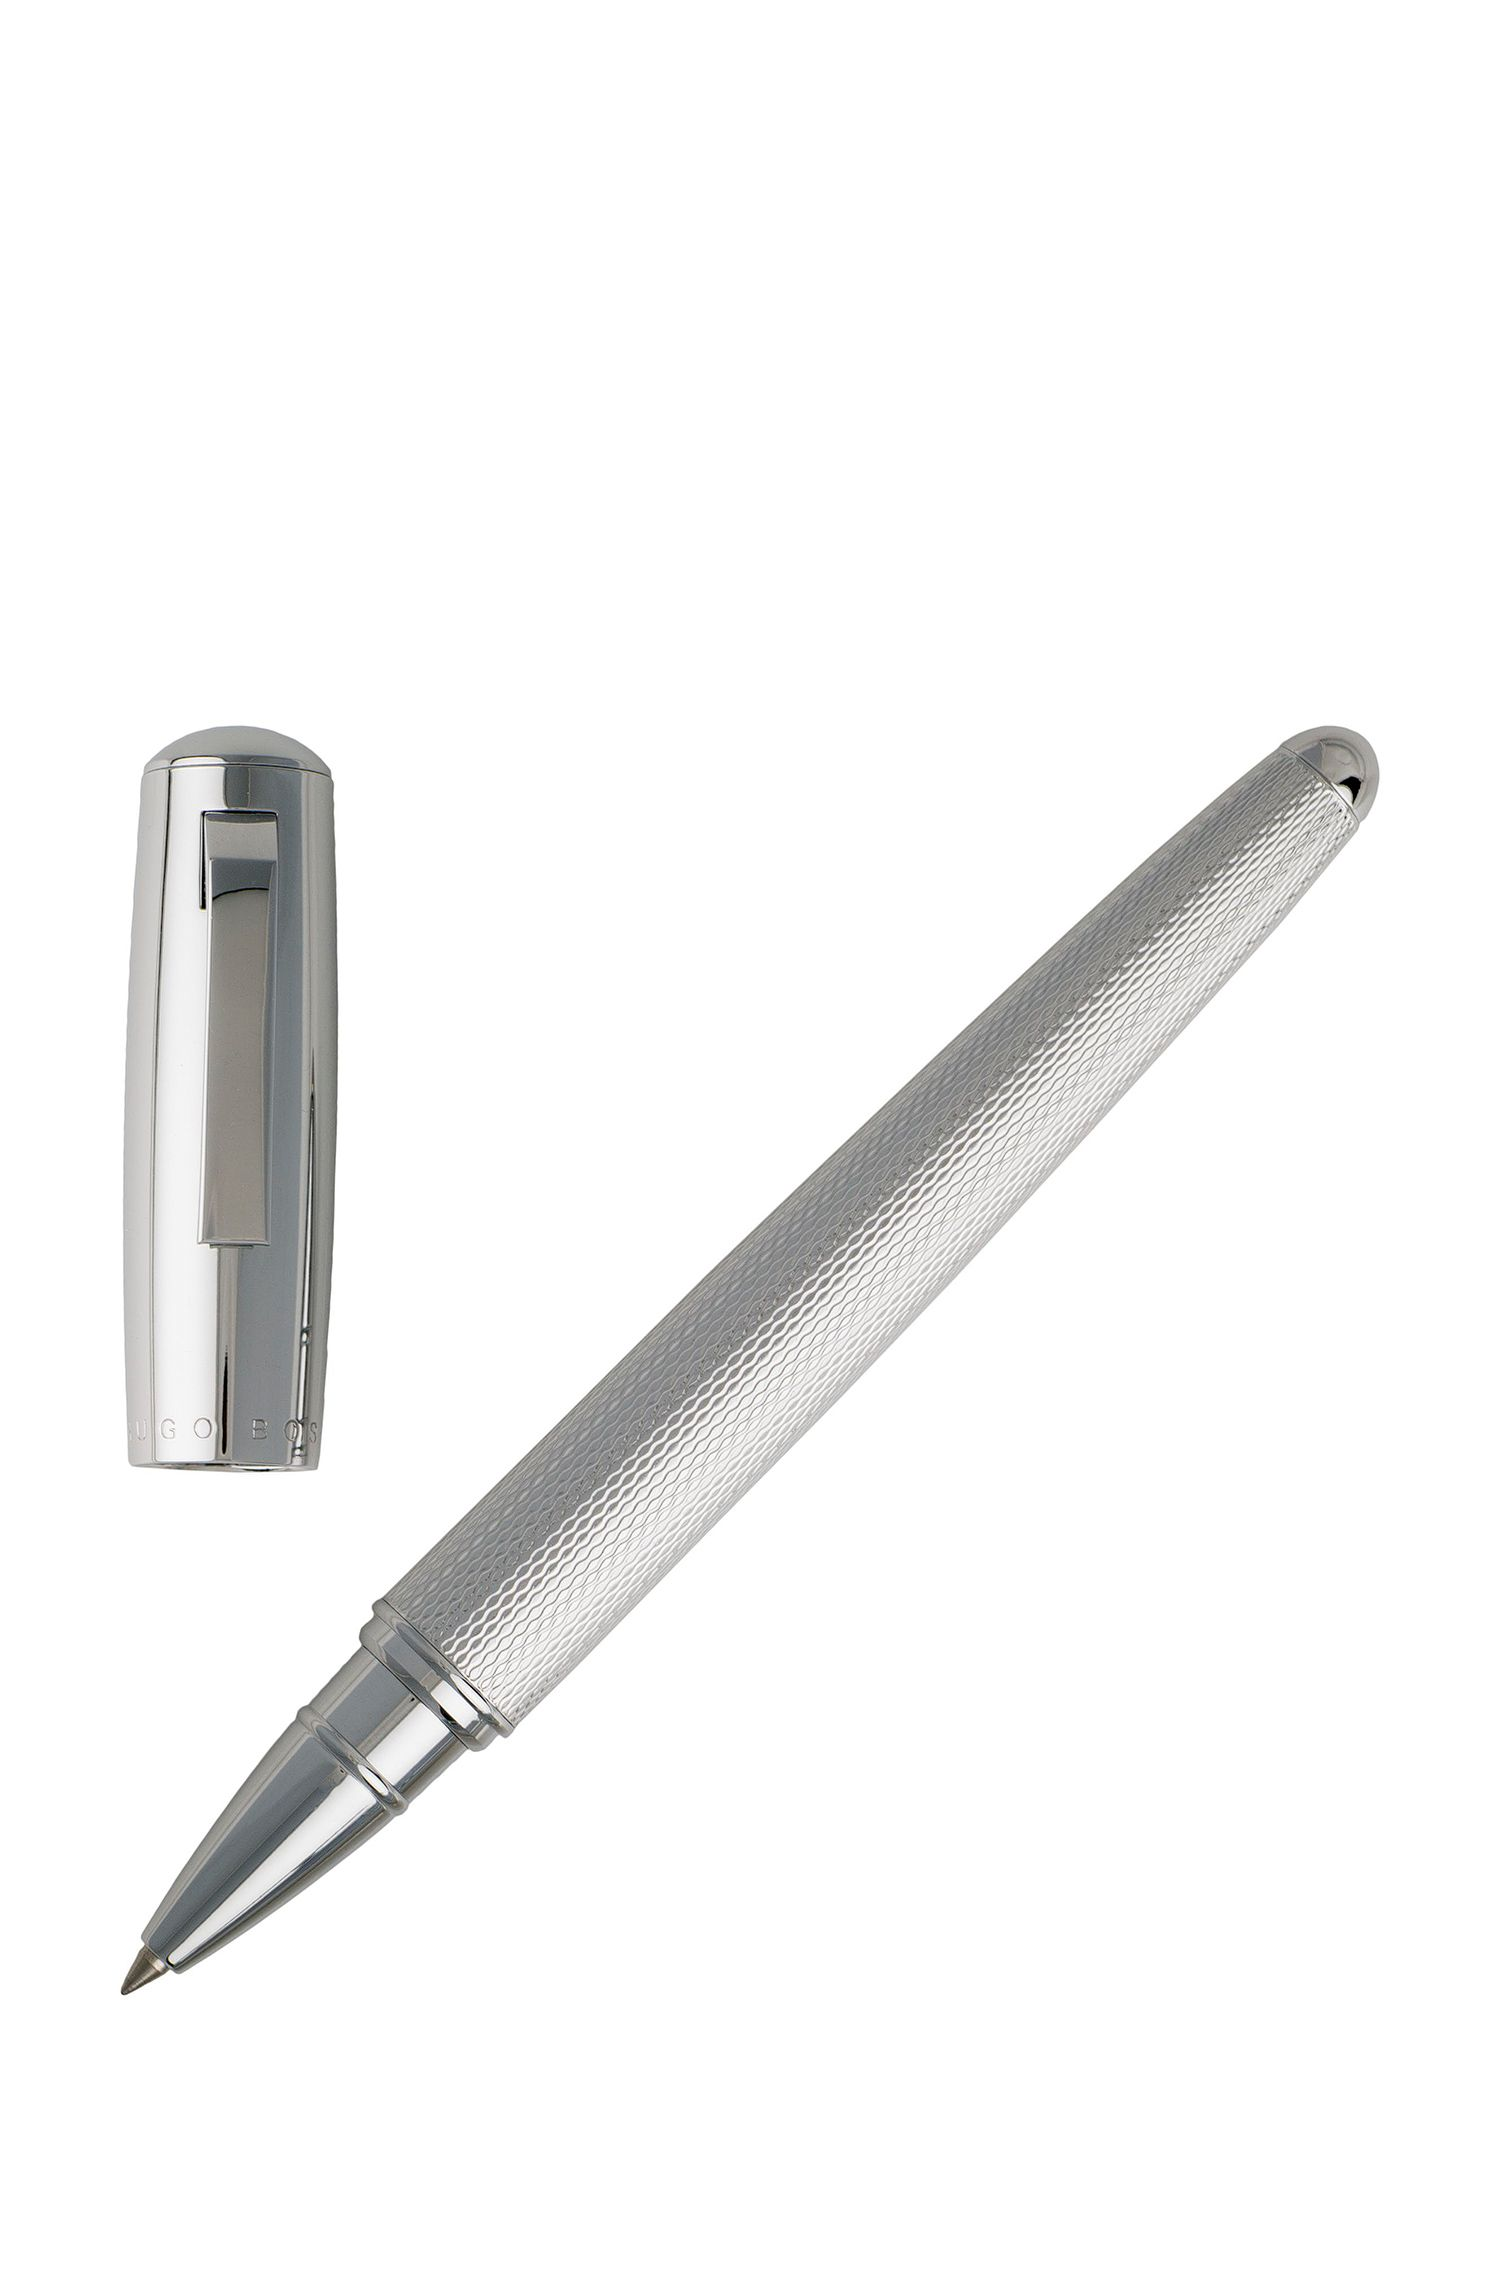 Chrome-plated rollerball pen with textured barrel